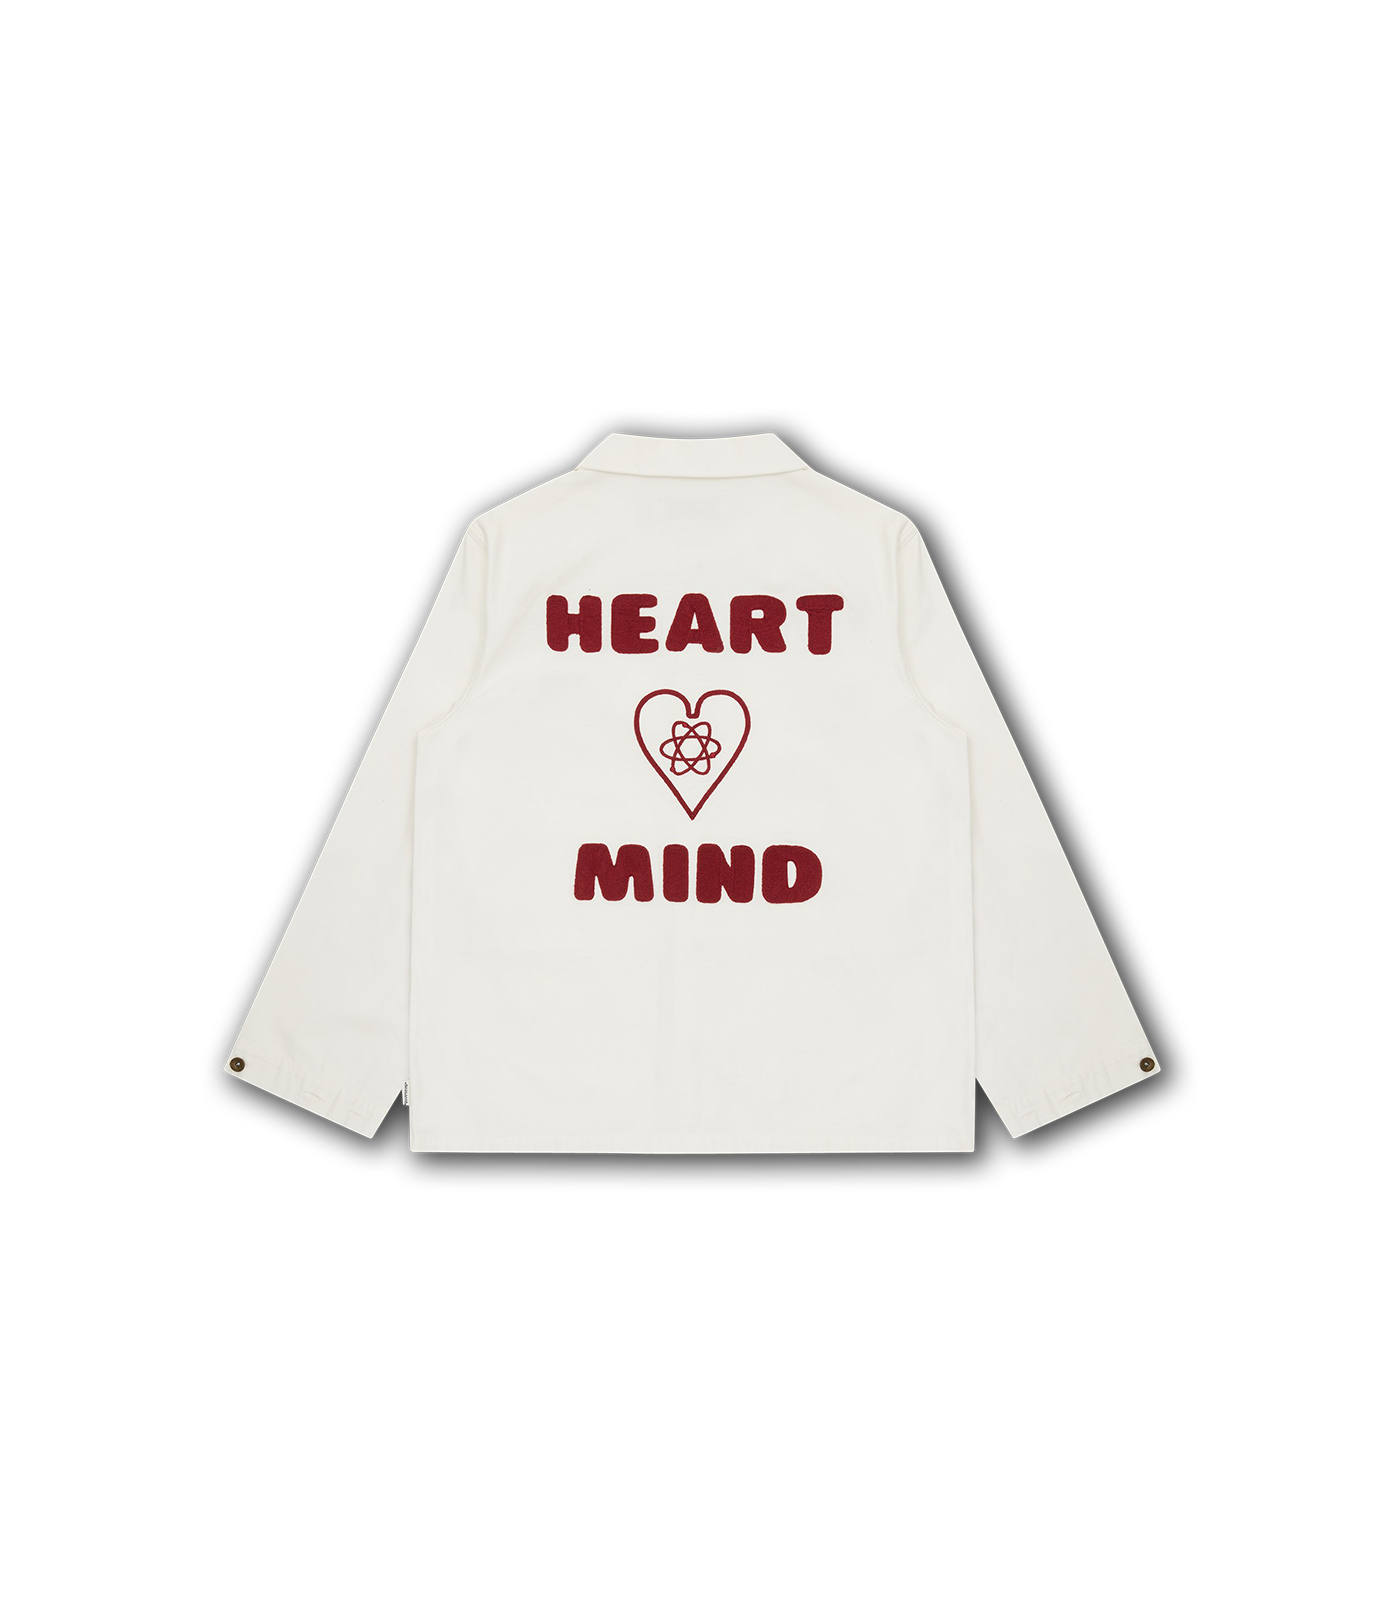 HEART & MIND UTILITY SHIRT - WHITE